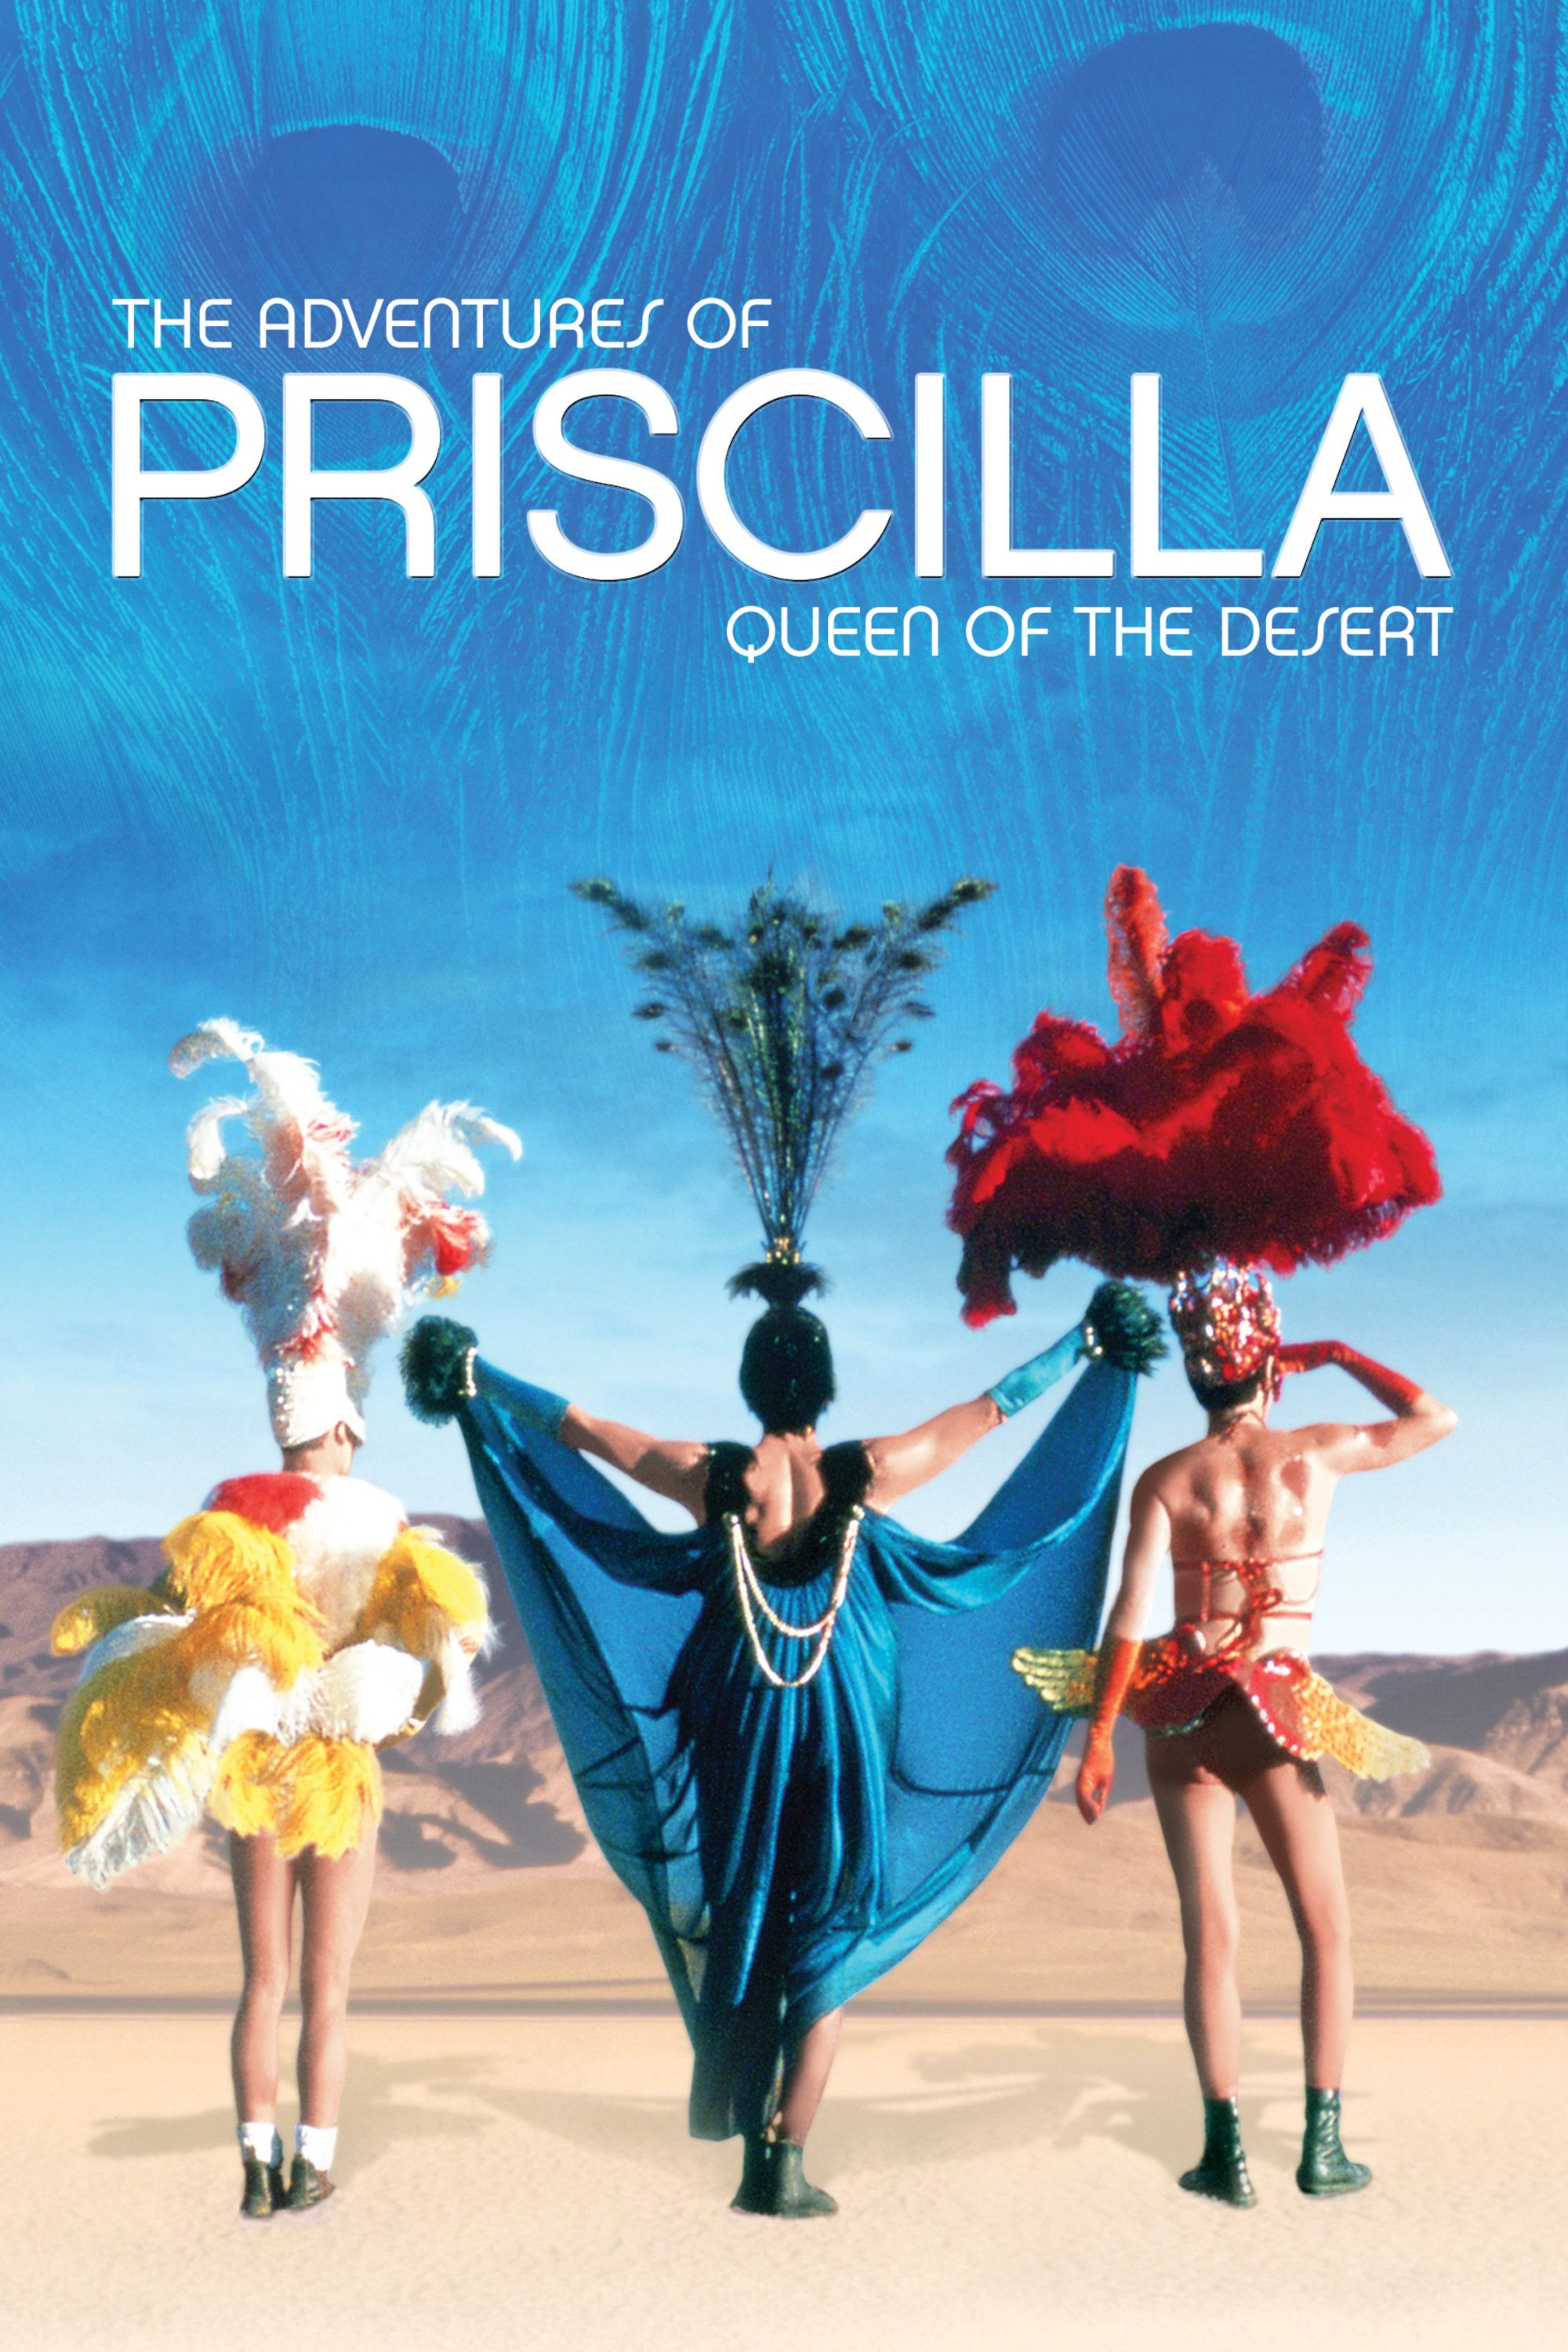 The Adventures of Priscilla, Queen of the Desert Movie Poster - Terence  Stamp, Hugo Weaving, Guy Pearce #TheAdventuresOfPriscilla,  #QueenOfTheDesert, ...